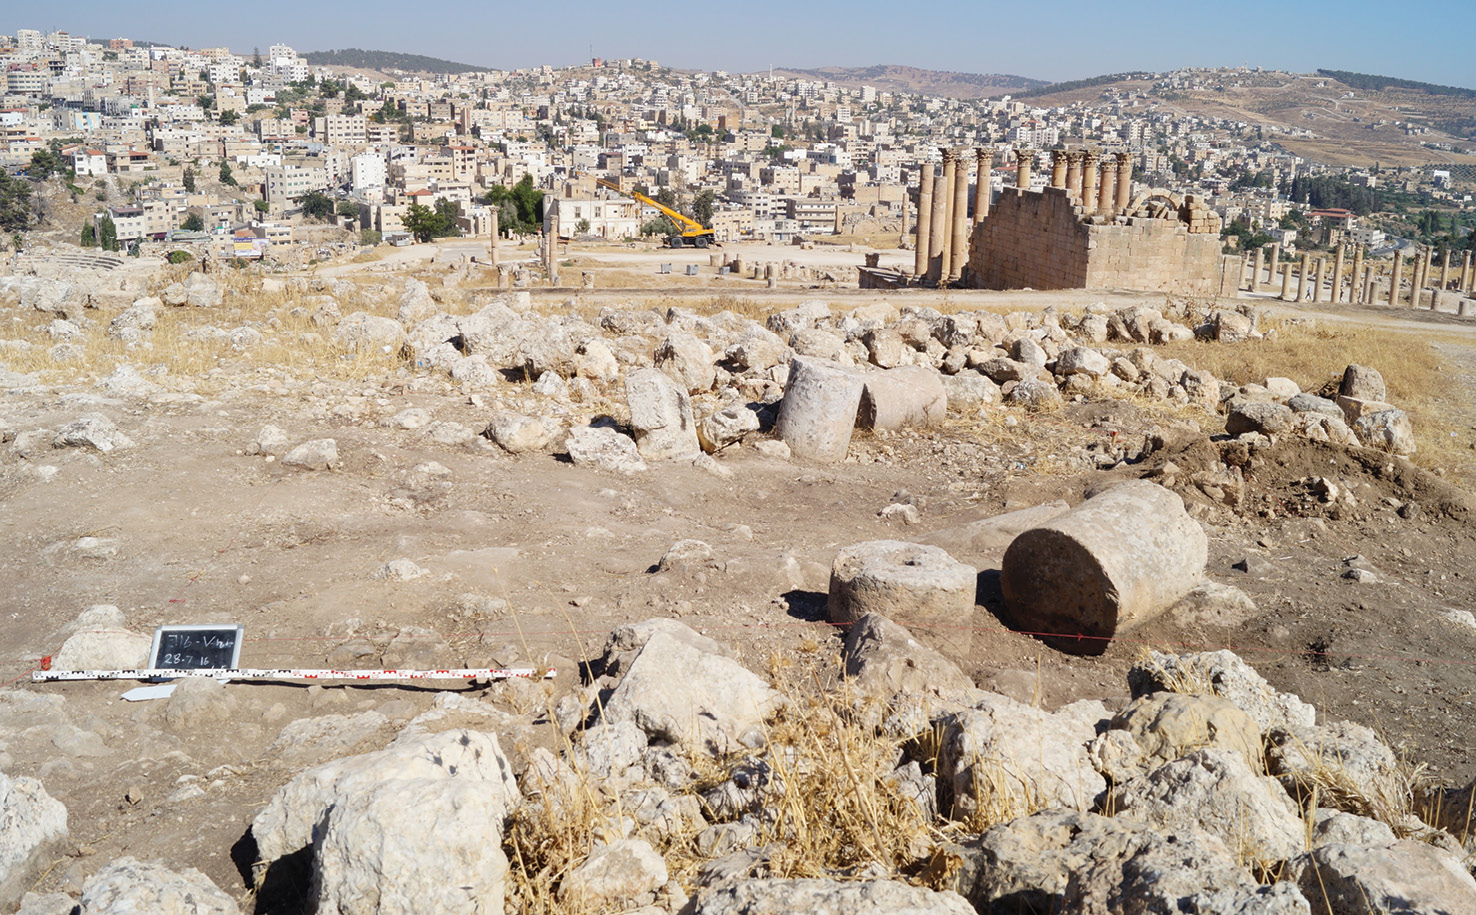 LEFT The beginning of excavations in 2016. Trench V is laid out to investigate the House of the Tesserae further. The modern city and the Temple of Artemis are seen in the background. For little more than a month, soil is removed, finds are recorded, and structures are preliminarily interpreted (below). The sound of Jerash accompanies the work: voices of schoolchildren singing the national anthem every day at 8am; bagpipe shows being practiced in the hippodrome south of the ancient town; and 'La Bamba' at full blast when the gas-cartridge salesman is nearby. Tourists flood along the colonnaded street, but some are attracted by the busyness on the hill, and venture up to find out what is going on.